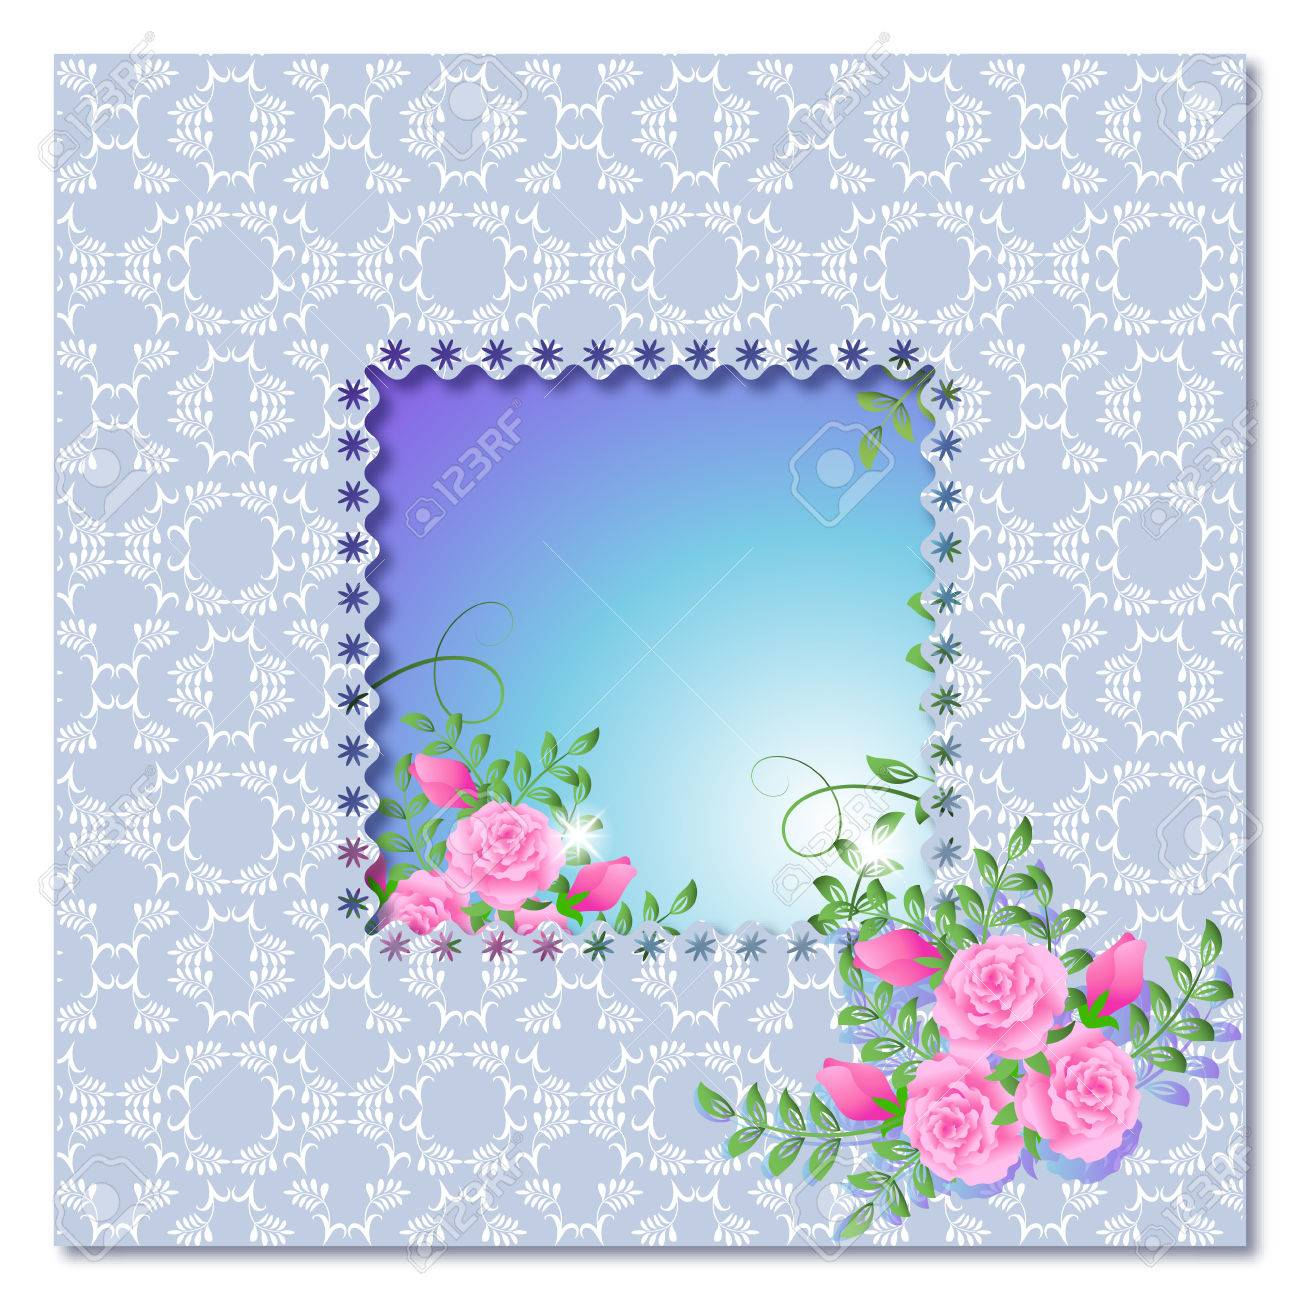 Background with frame, roses and a place for text or photo. Stock Vector - 8154181